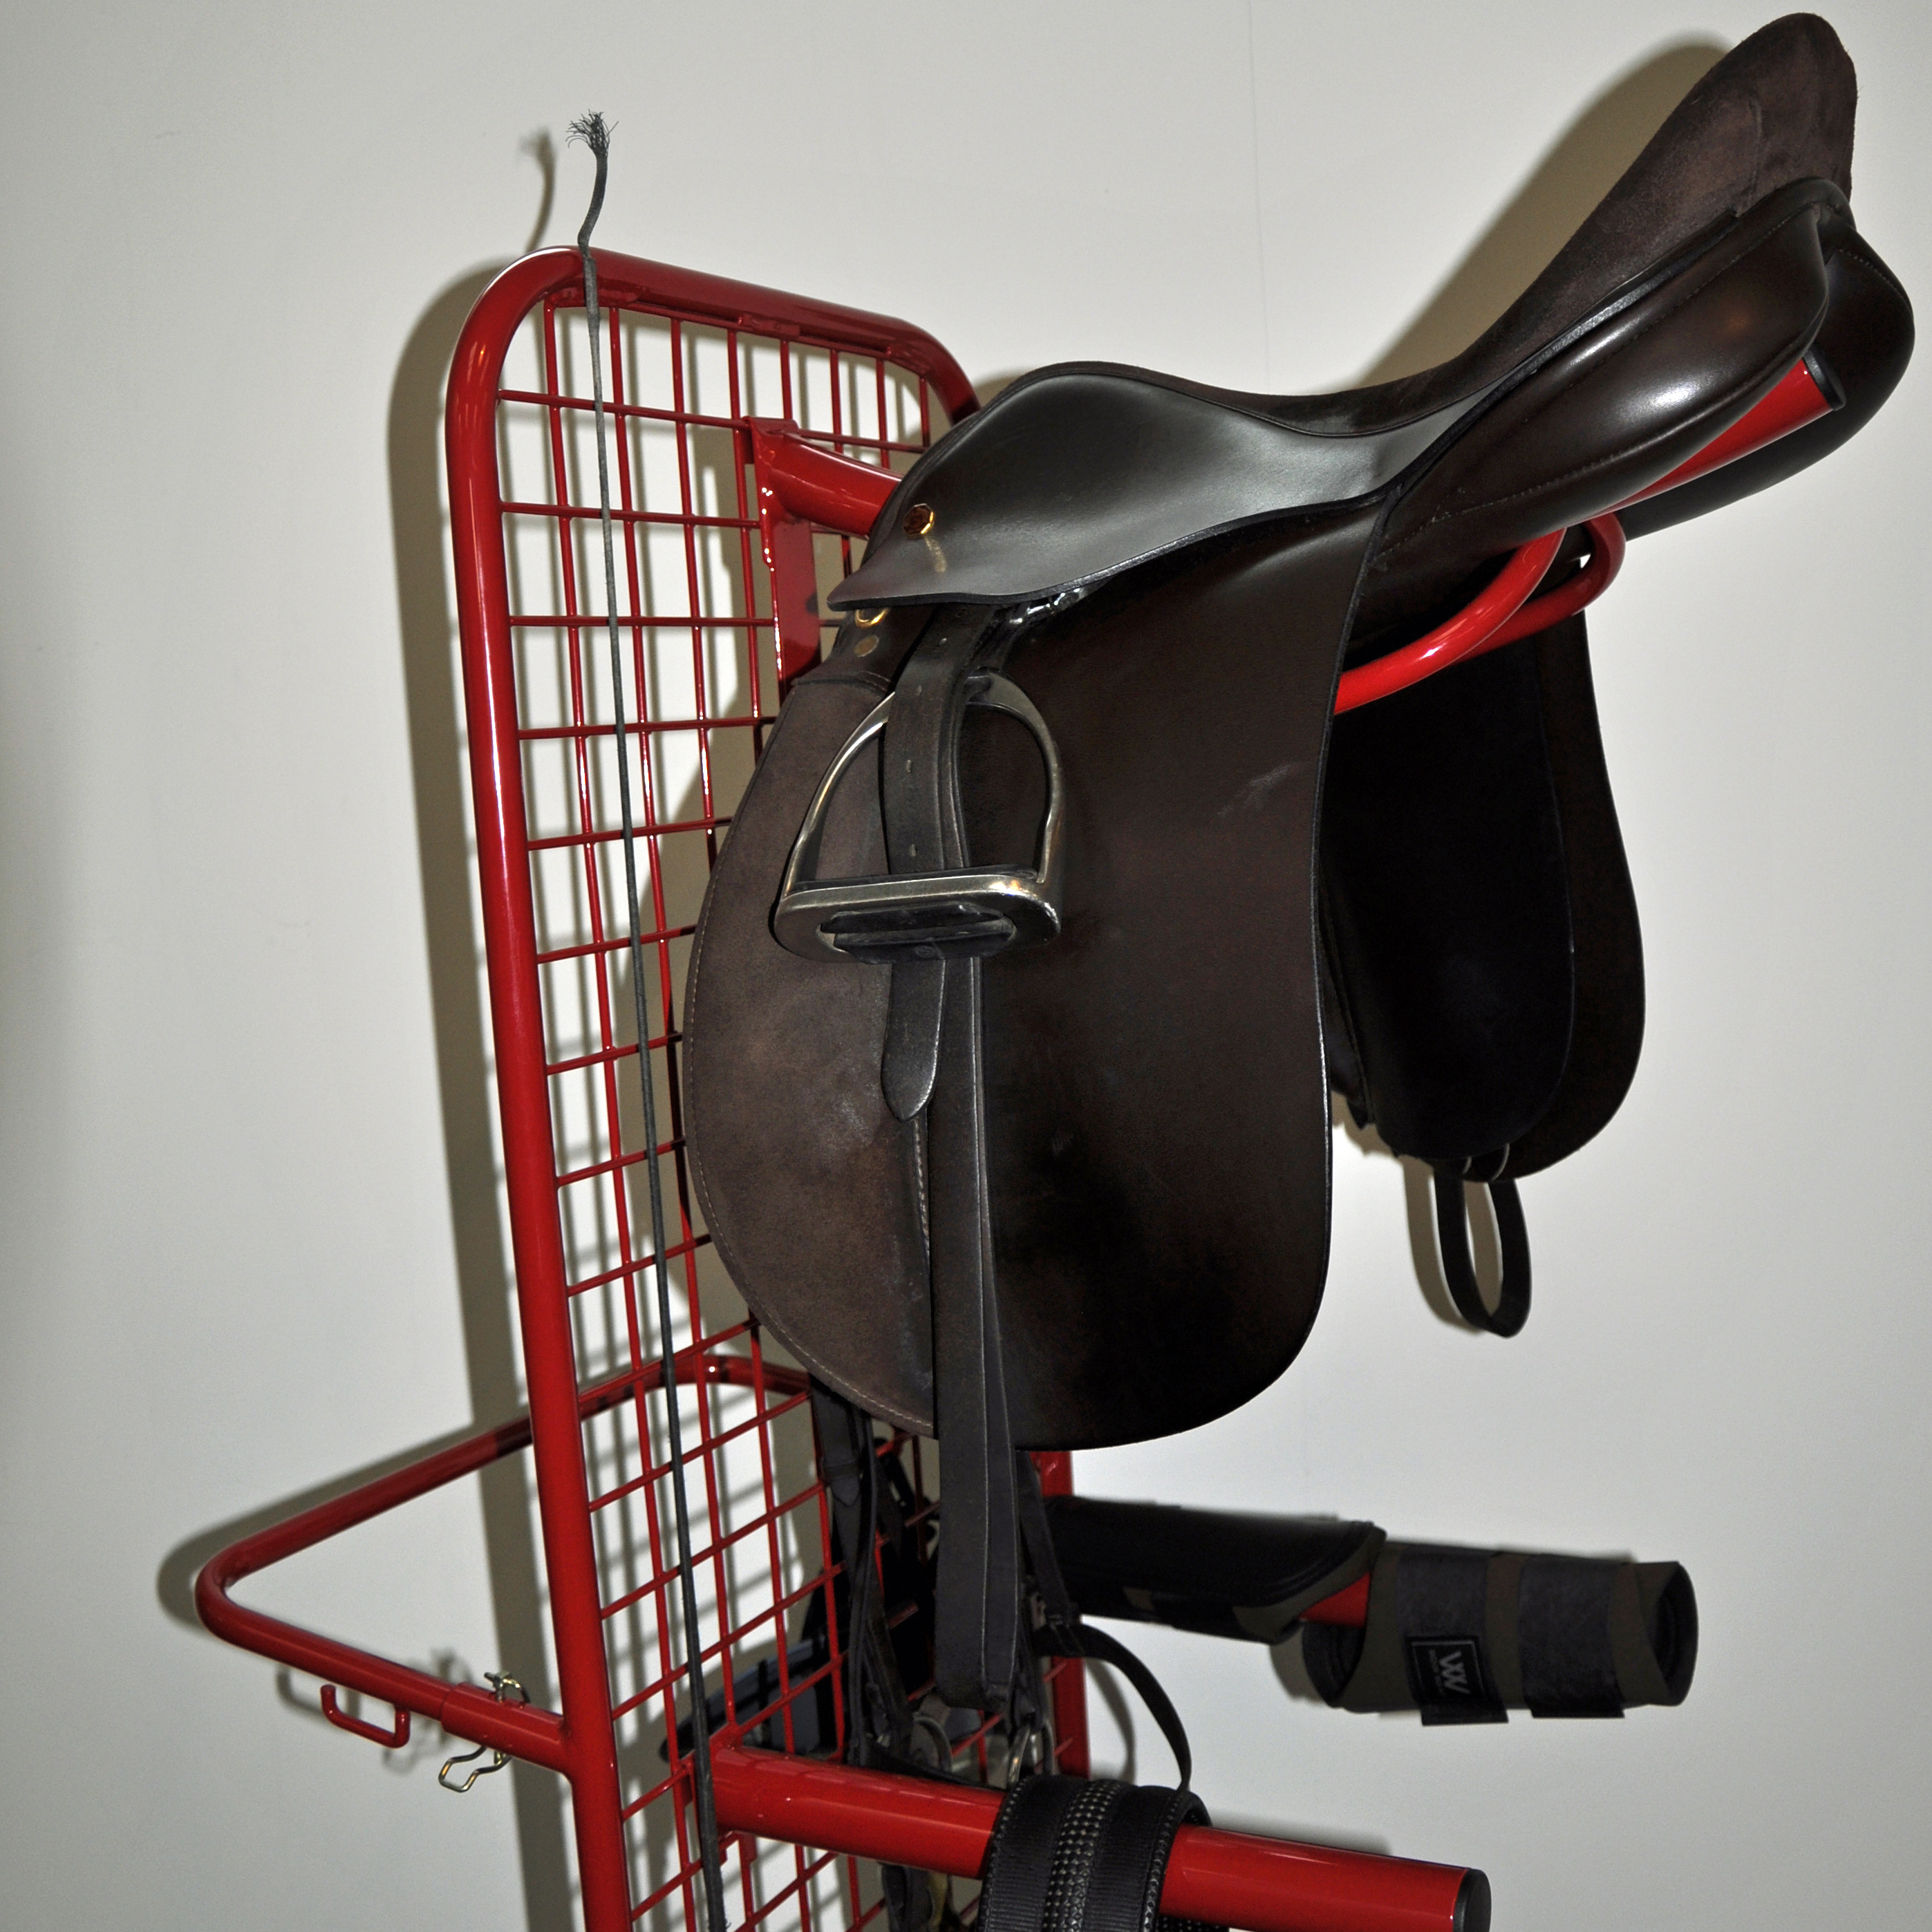 The Bennington Tack Trolley